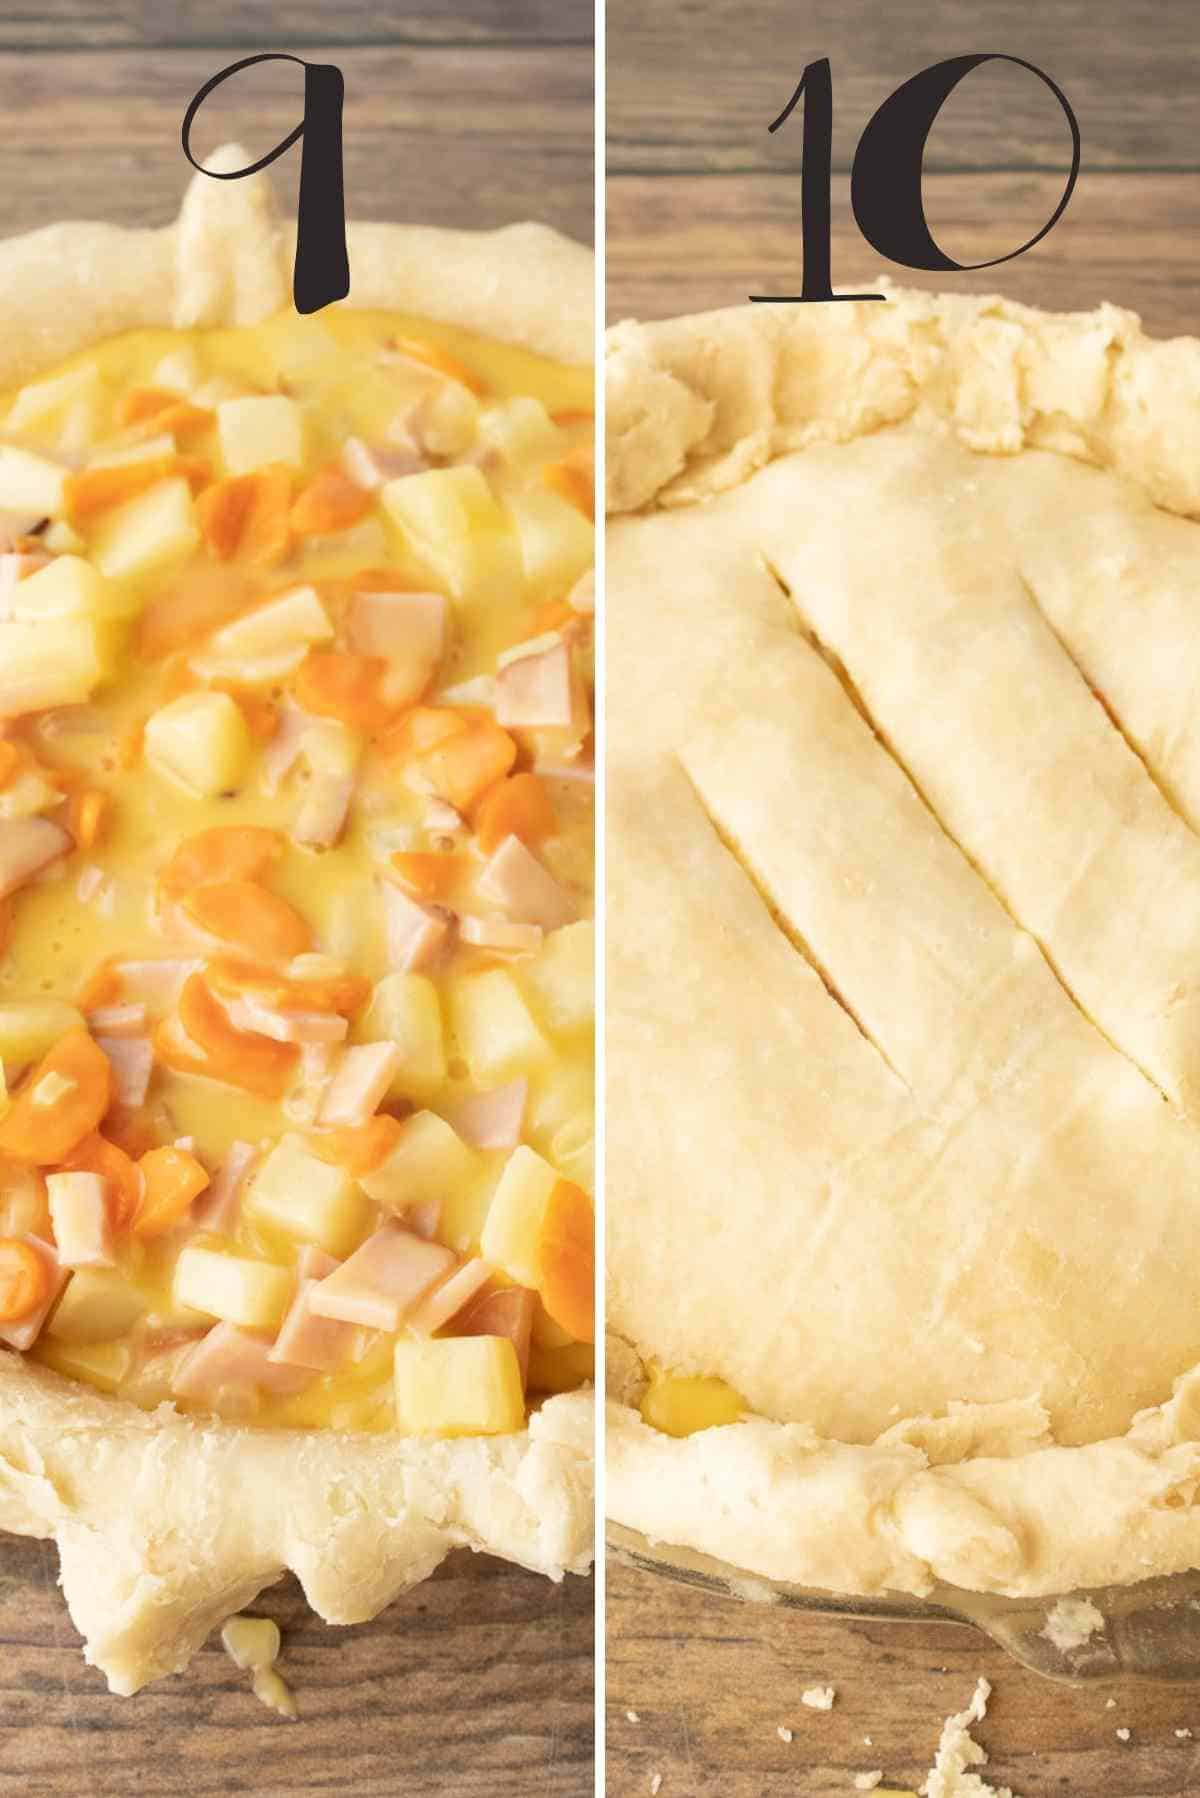 Ham pot pie before and after adding the top pie crust.